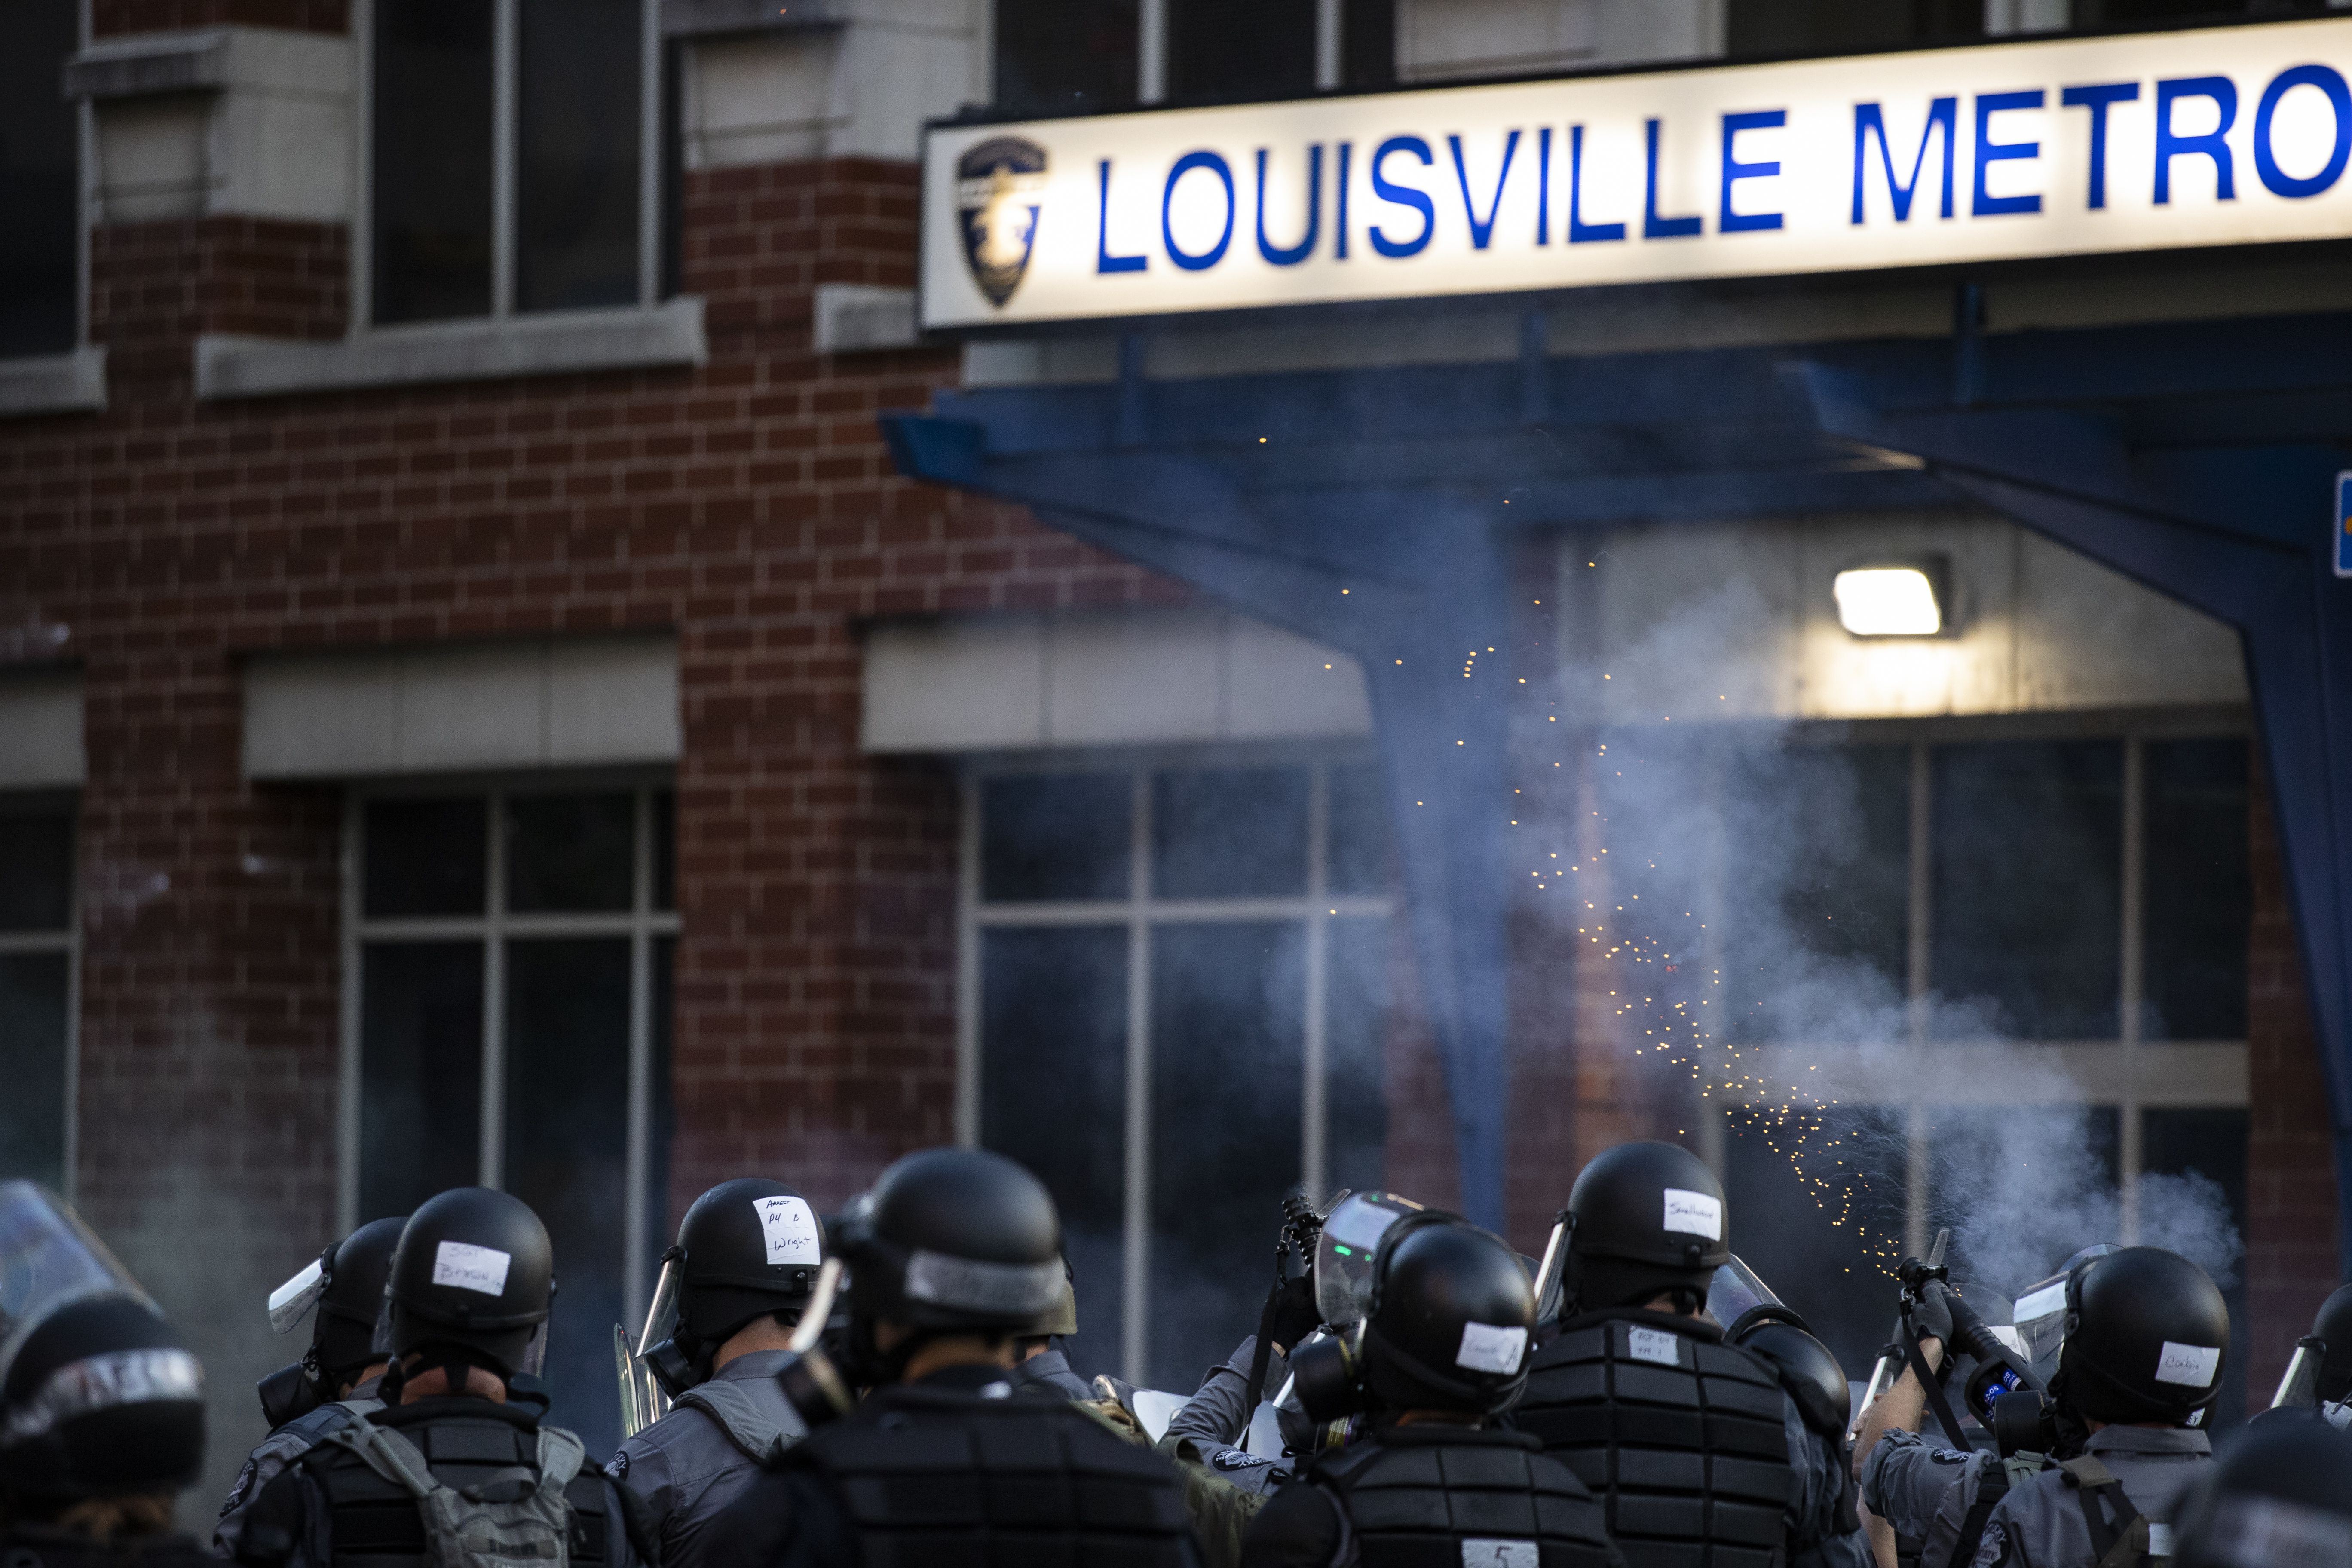 Louisville police chief fired after body cameras found inactive in shooting of black man